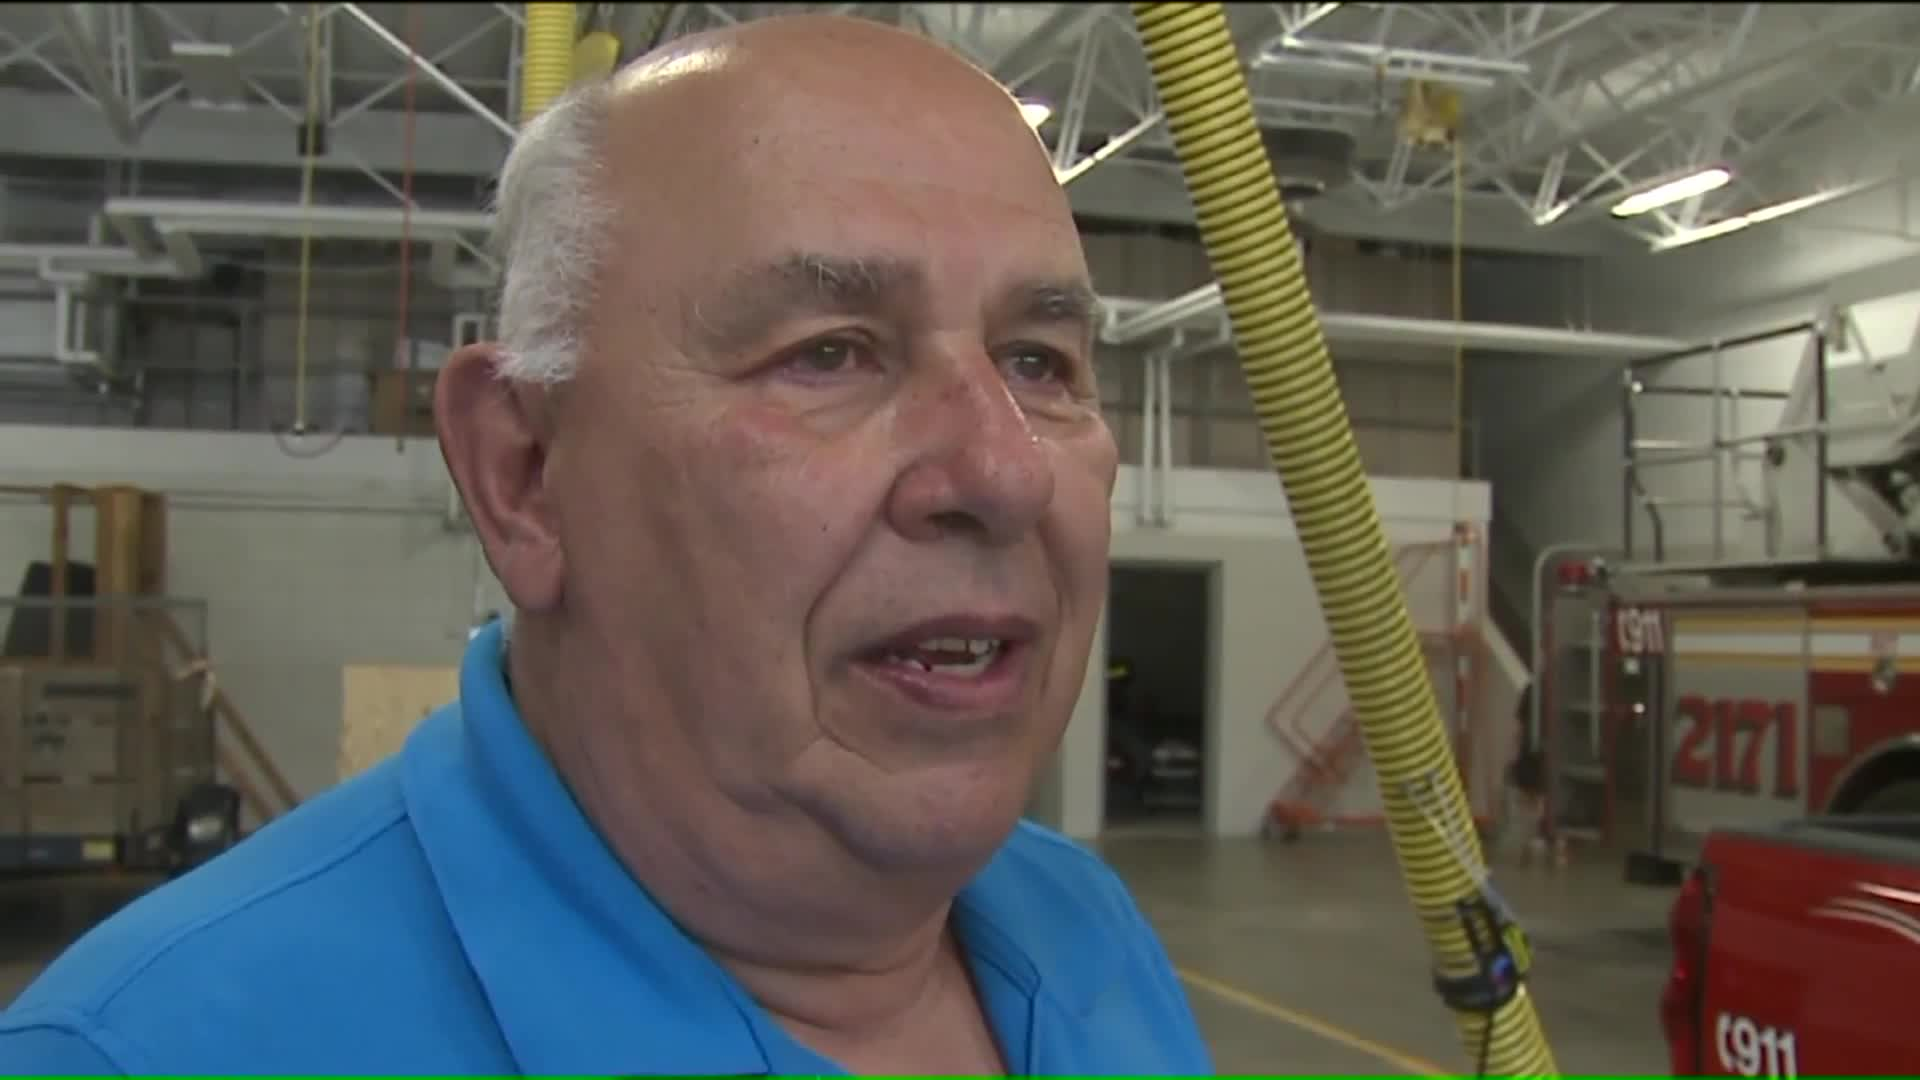 88-Year-Old Man Comes Out of Retirement for 'One More Shift' as a Firefighter